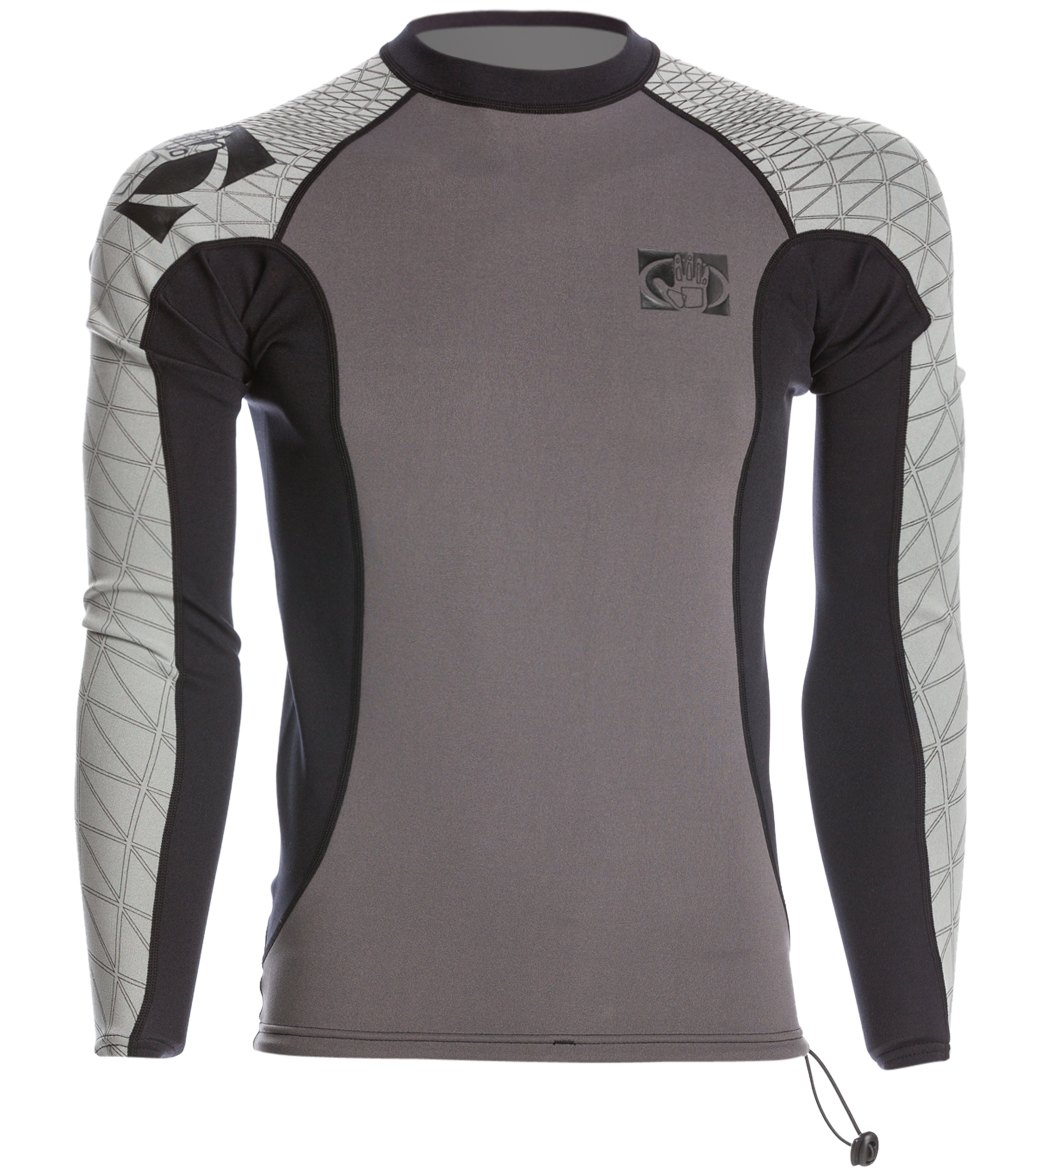 in Wetsuit Jackets & Vests · Body Glove .5MM Insotherm Ti-Si Titanium Long Sleeve Thermal Rashguard